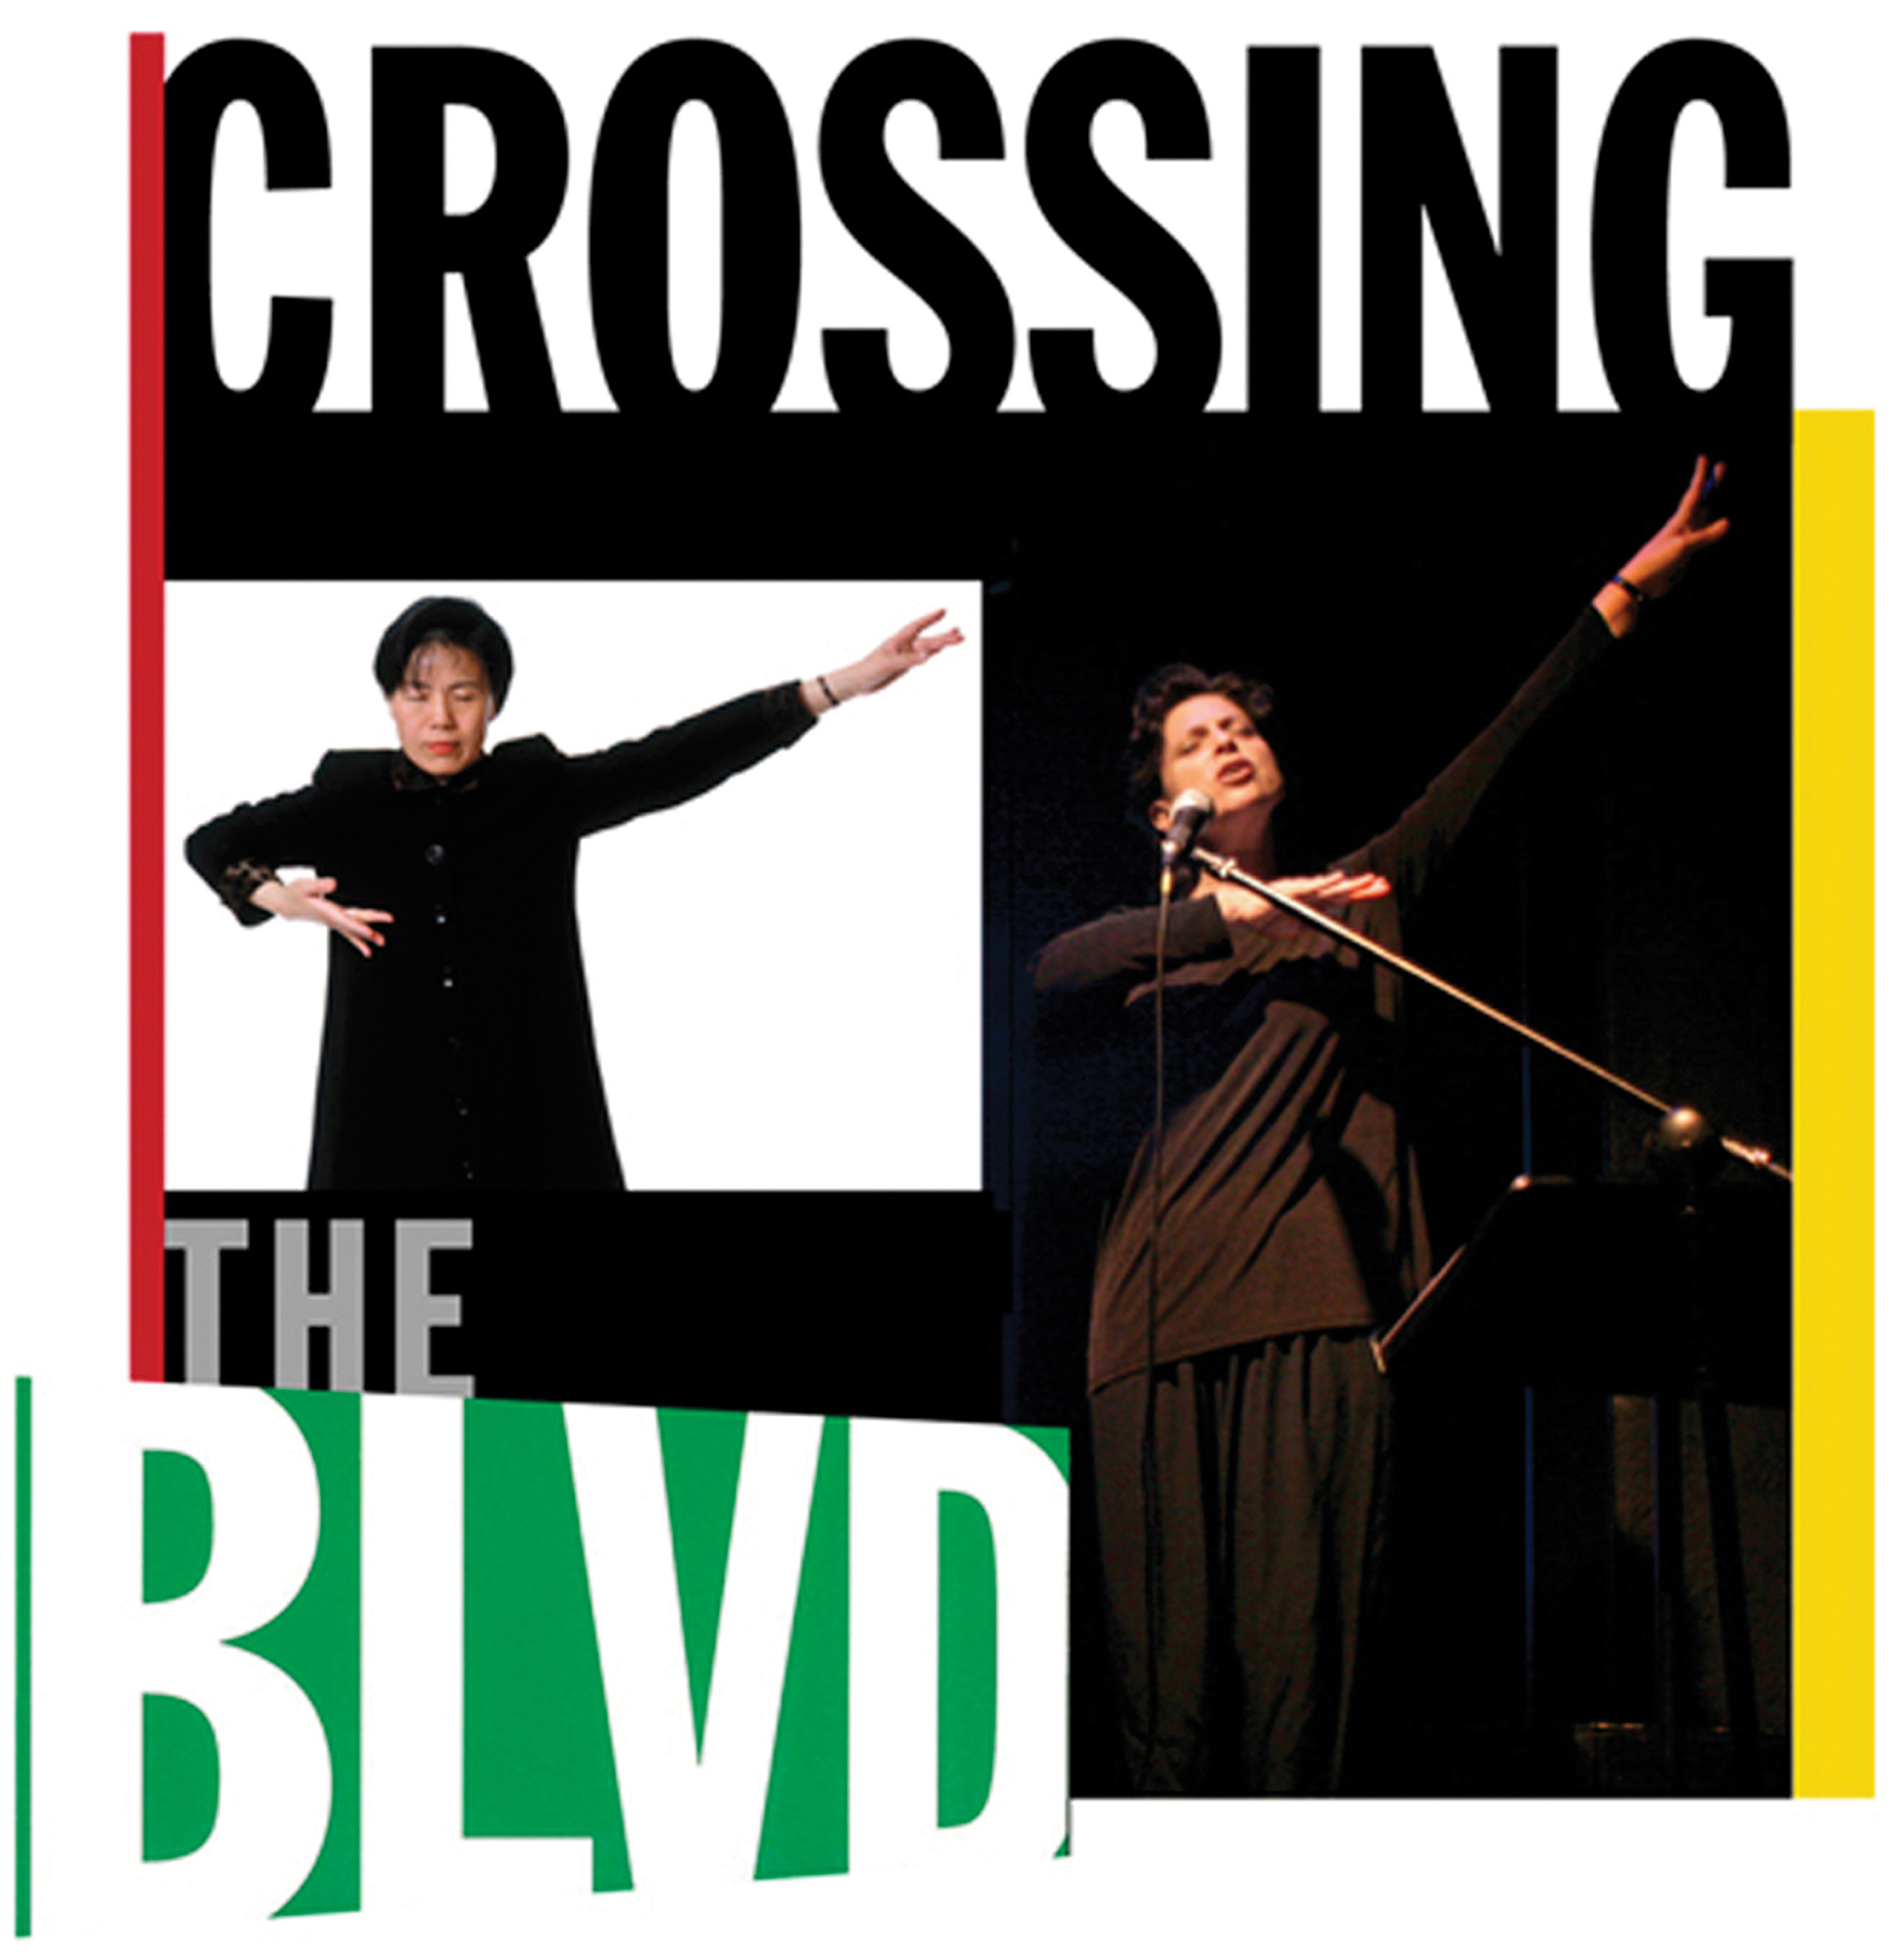 crossingblvdjudithperforming RGB for webw logo4.jpg